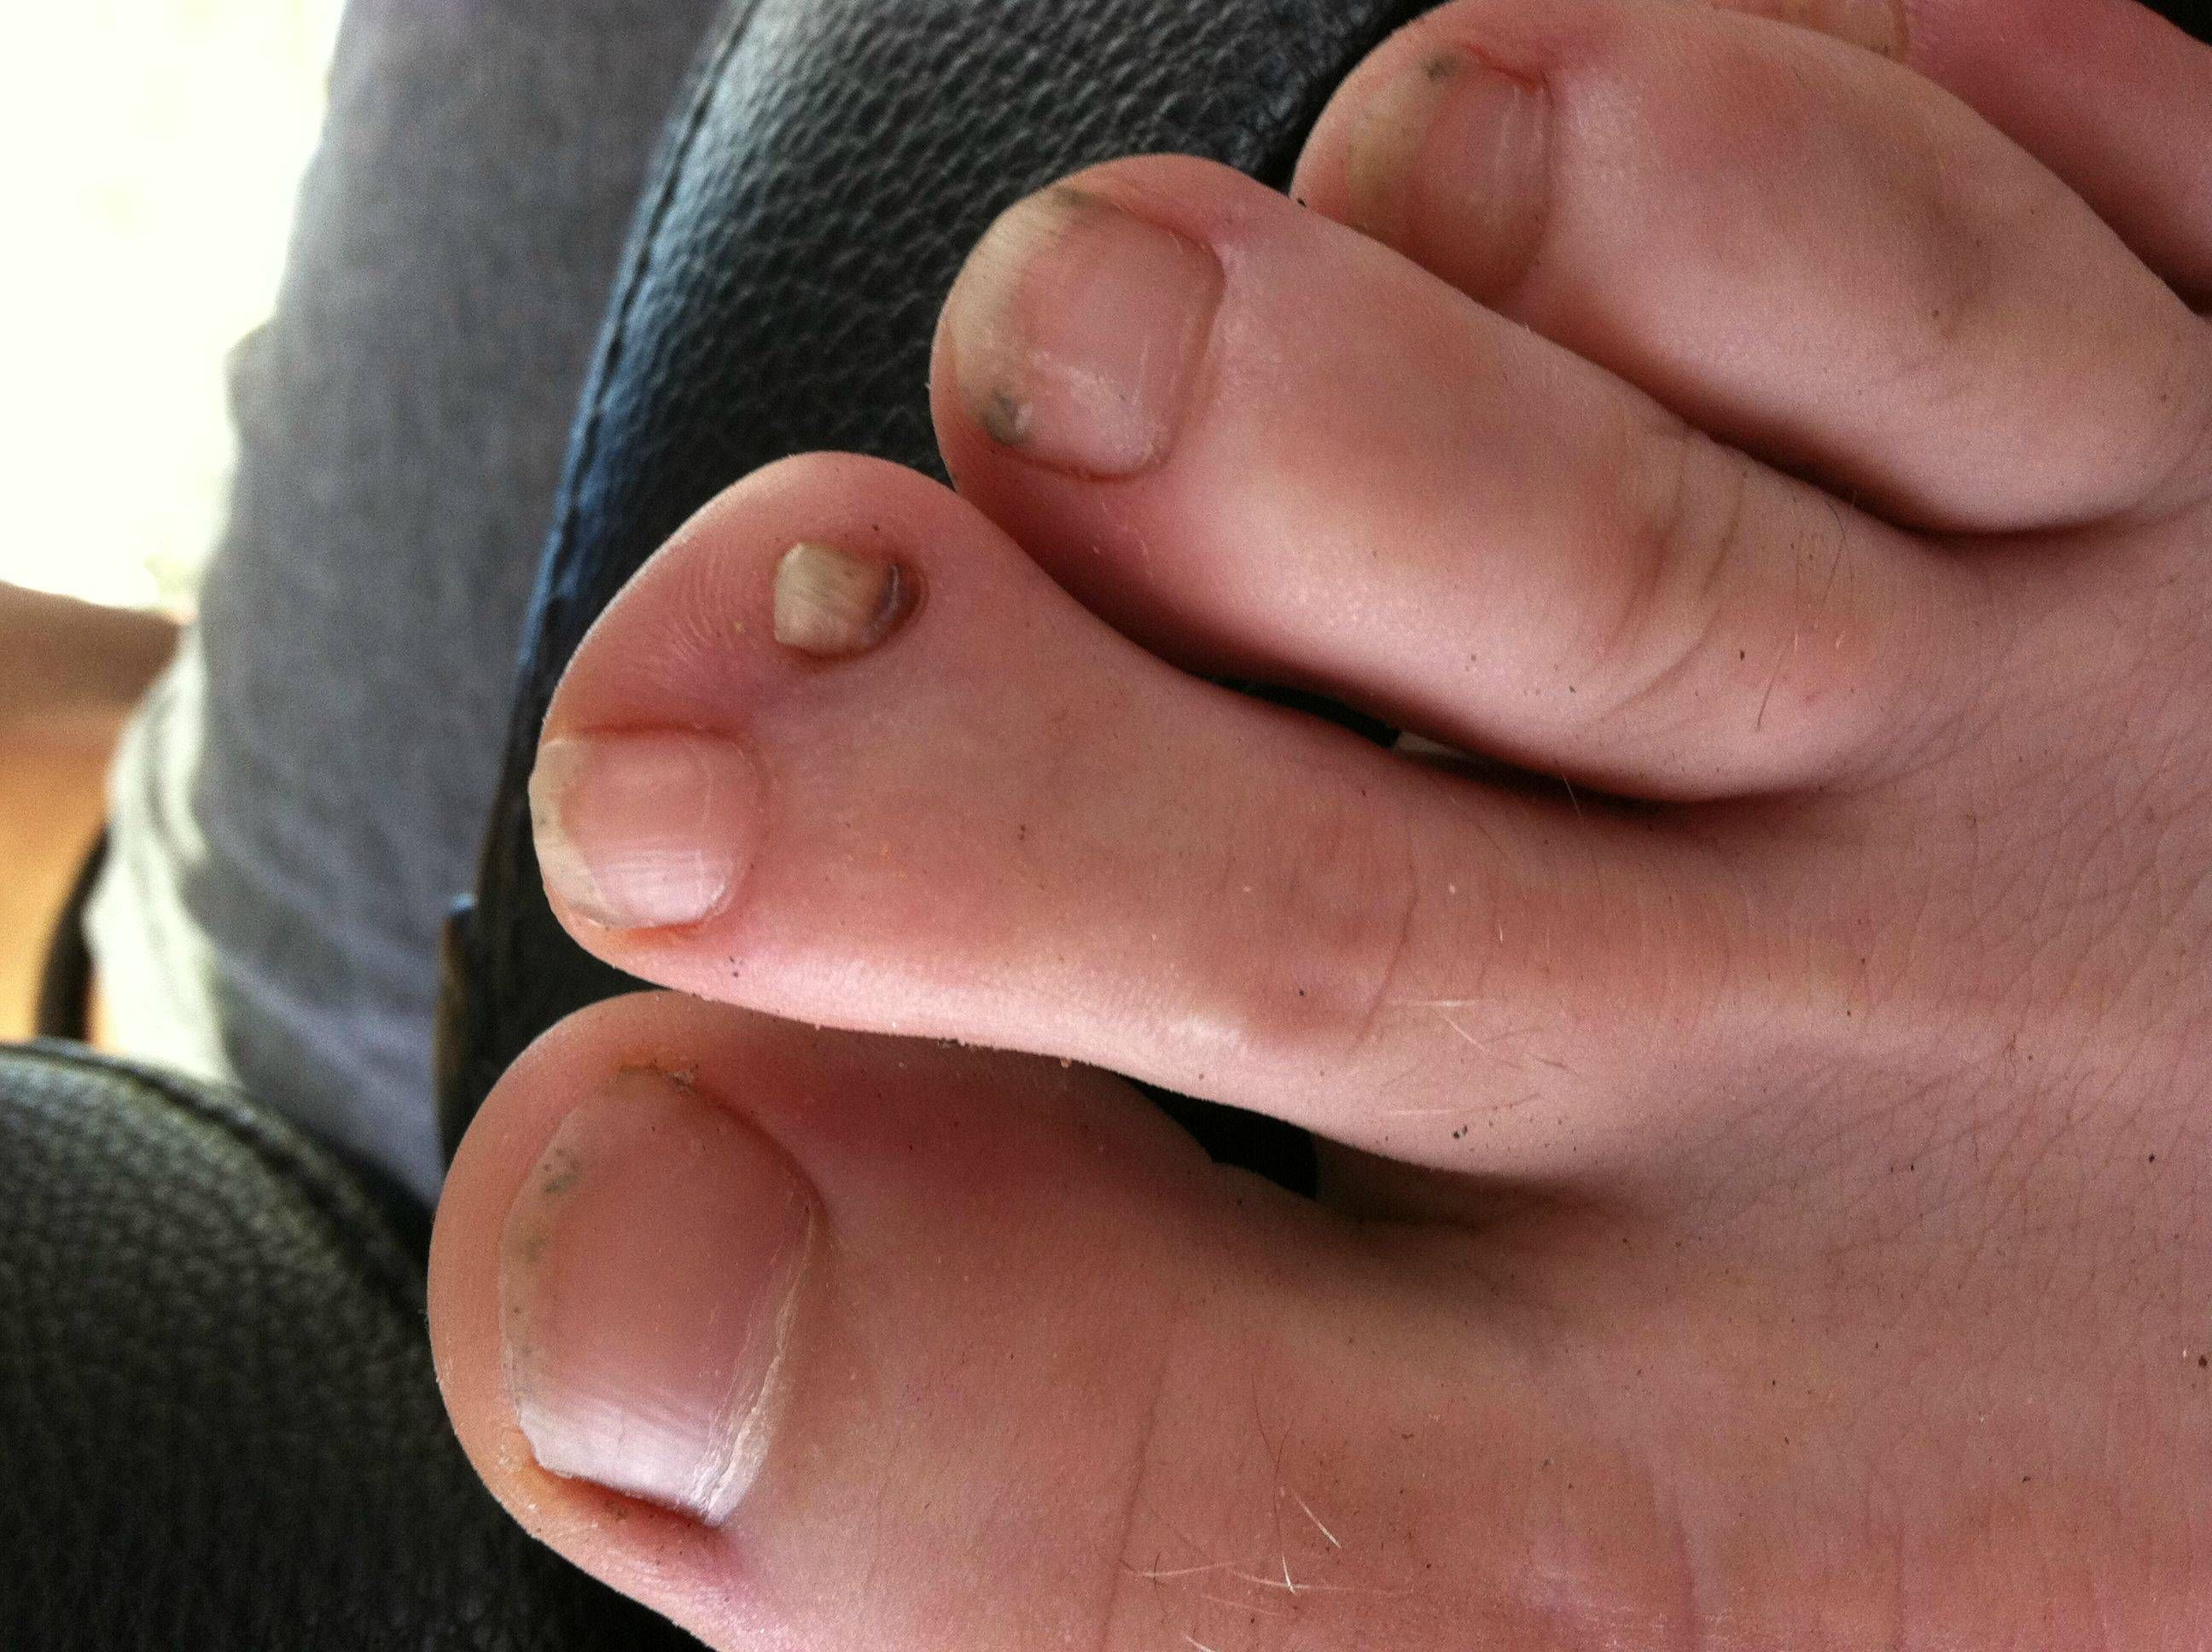 So I recently discovered my friend has two toenails on one toe